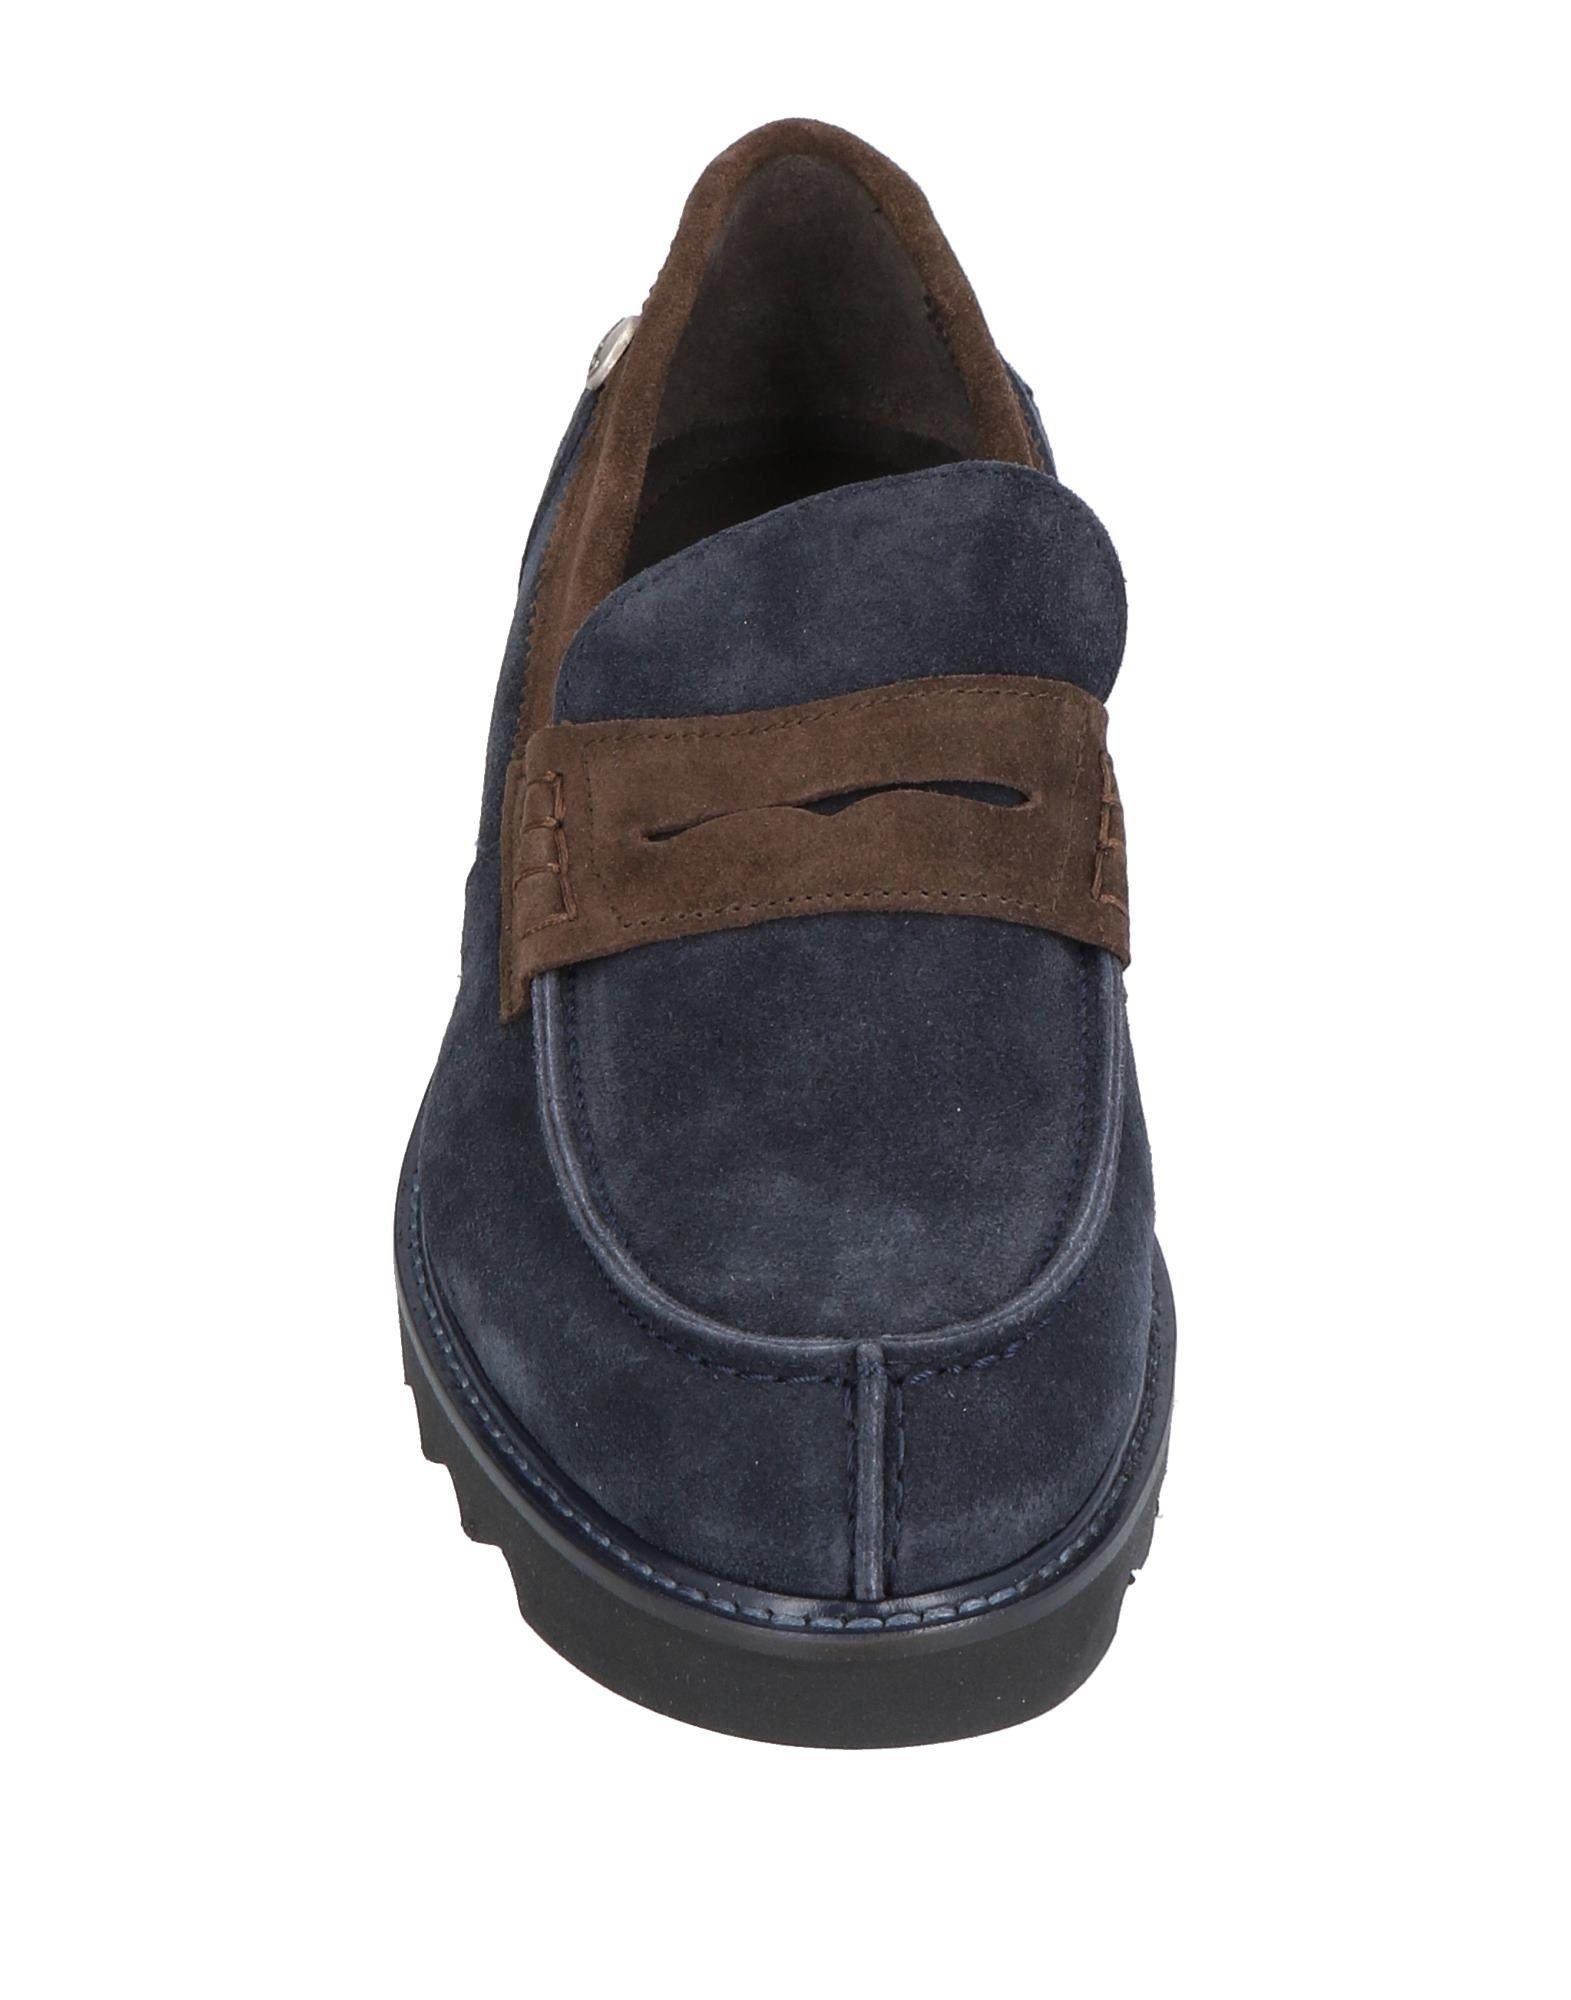 ( Verba ) Suede Loafer in Dark Blue (Blue) for Men